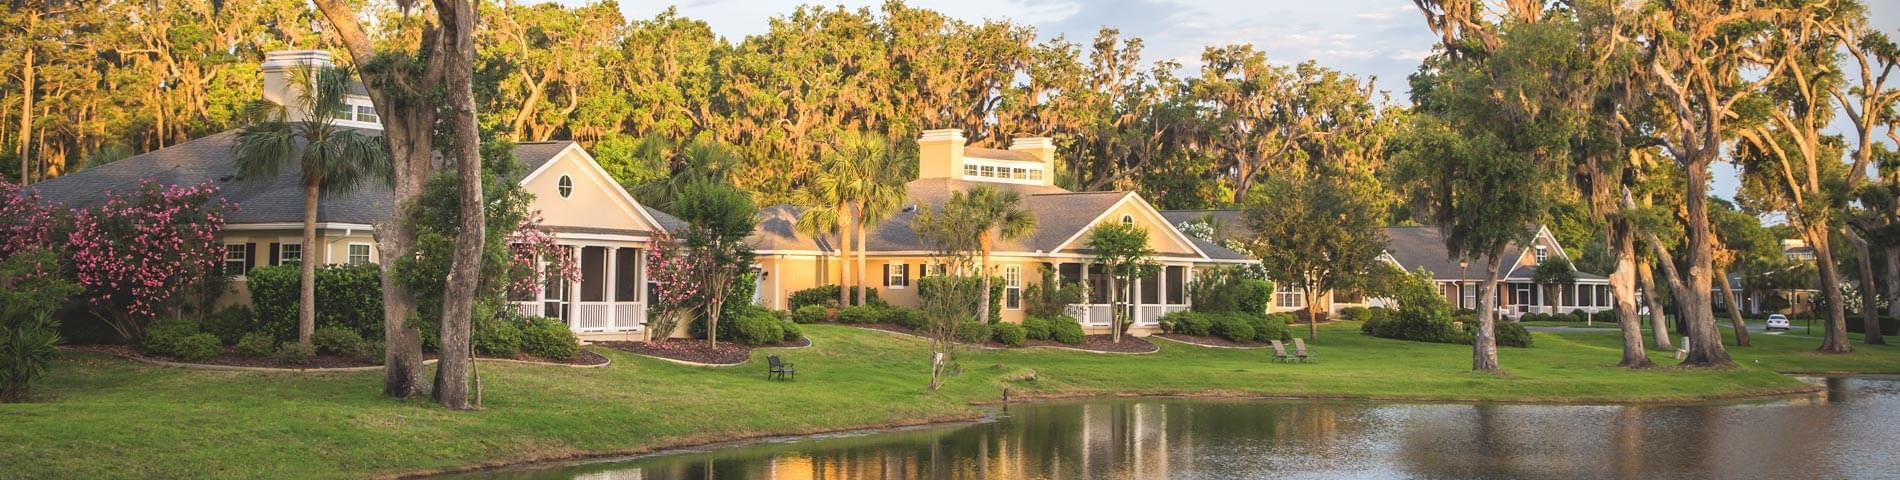 Photo of Marsh Edge, Assisted Living, Nursing Home, Independent Living, CCRC, Saint Simons Island, GA 12